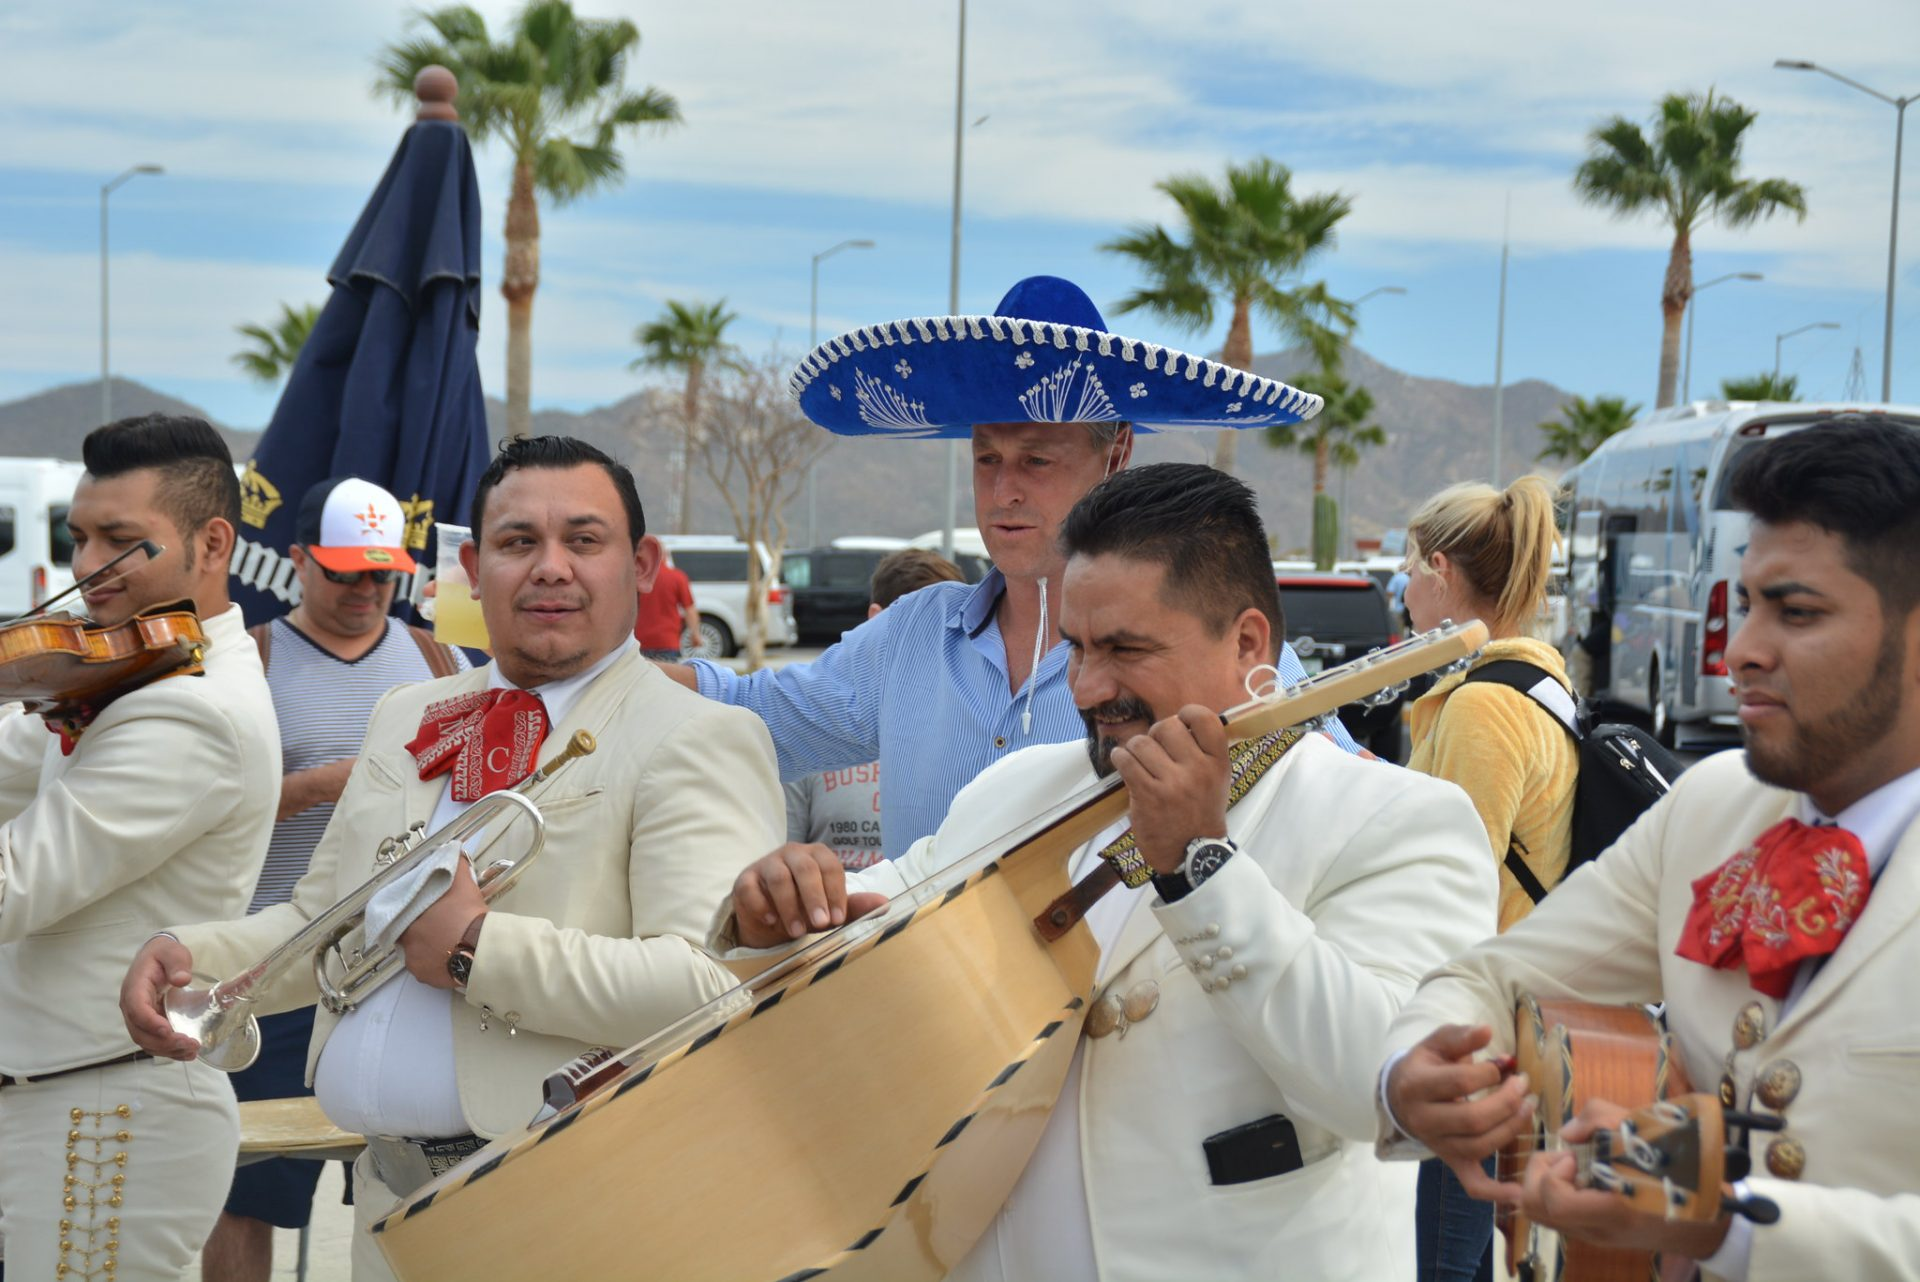 Local sounds of the mariachi entertainers